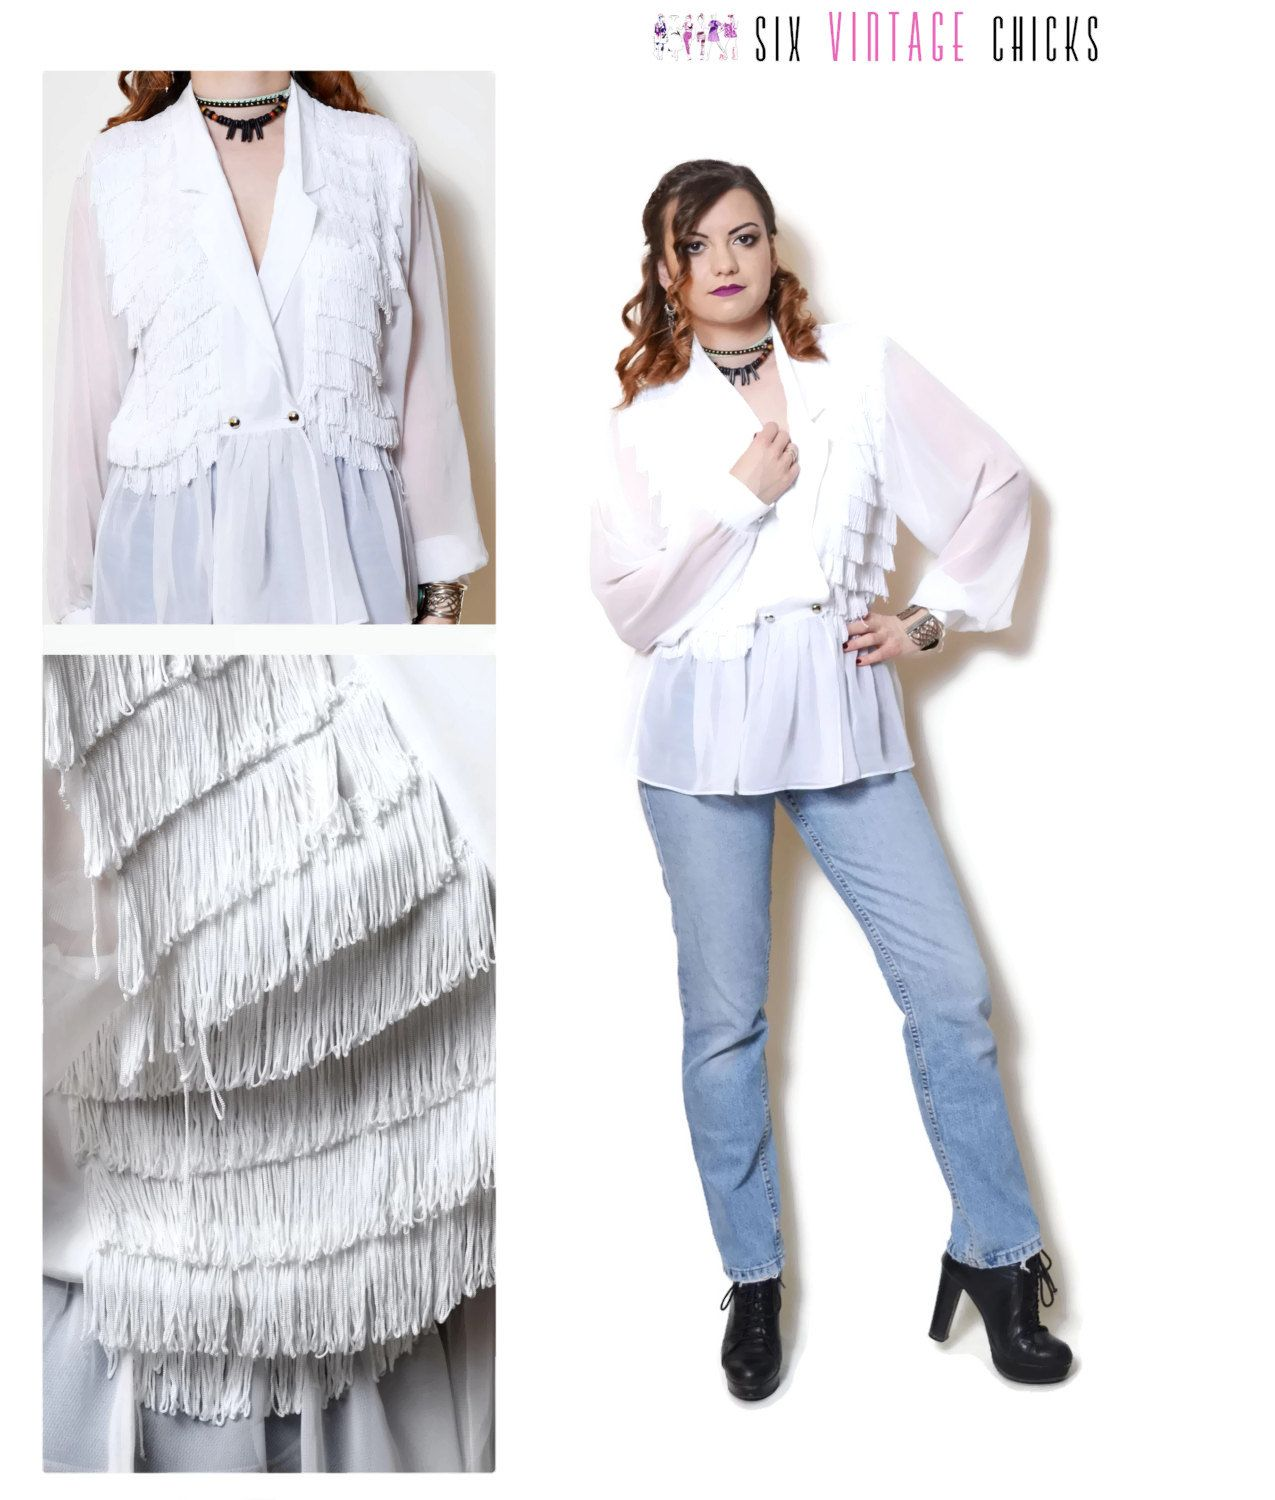 cbebd0056f3ae2 fringe shirt women sexy tops white blouse 80s clothing hippie blouse long sleeve  shirt button down bohemian seethrough boho chic Size M by SixVintageChicks  ...